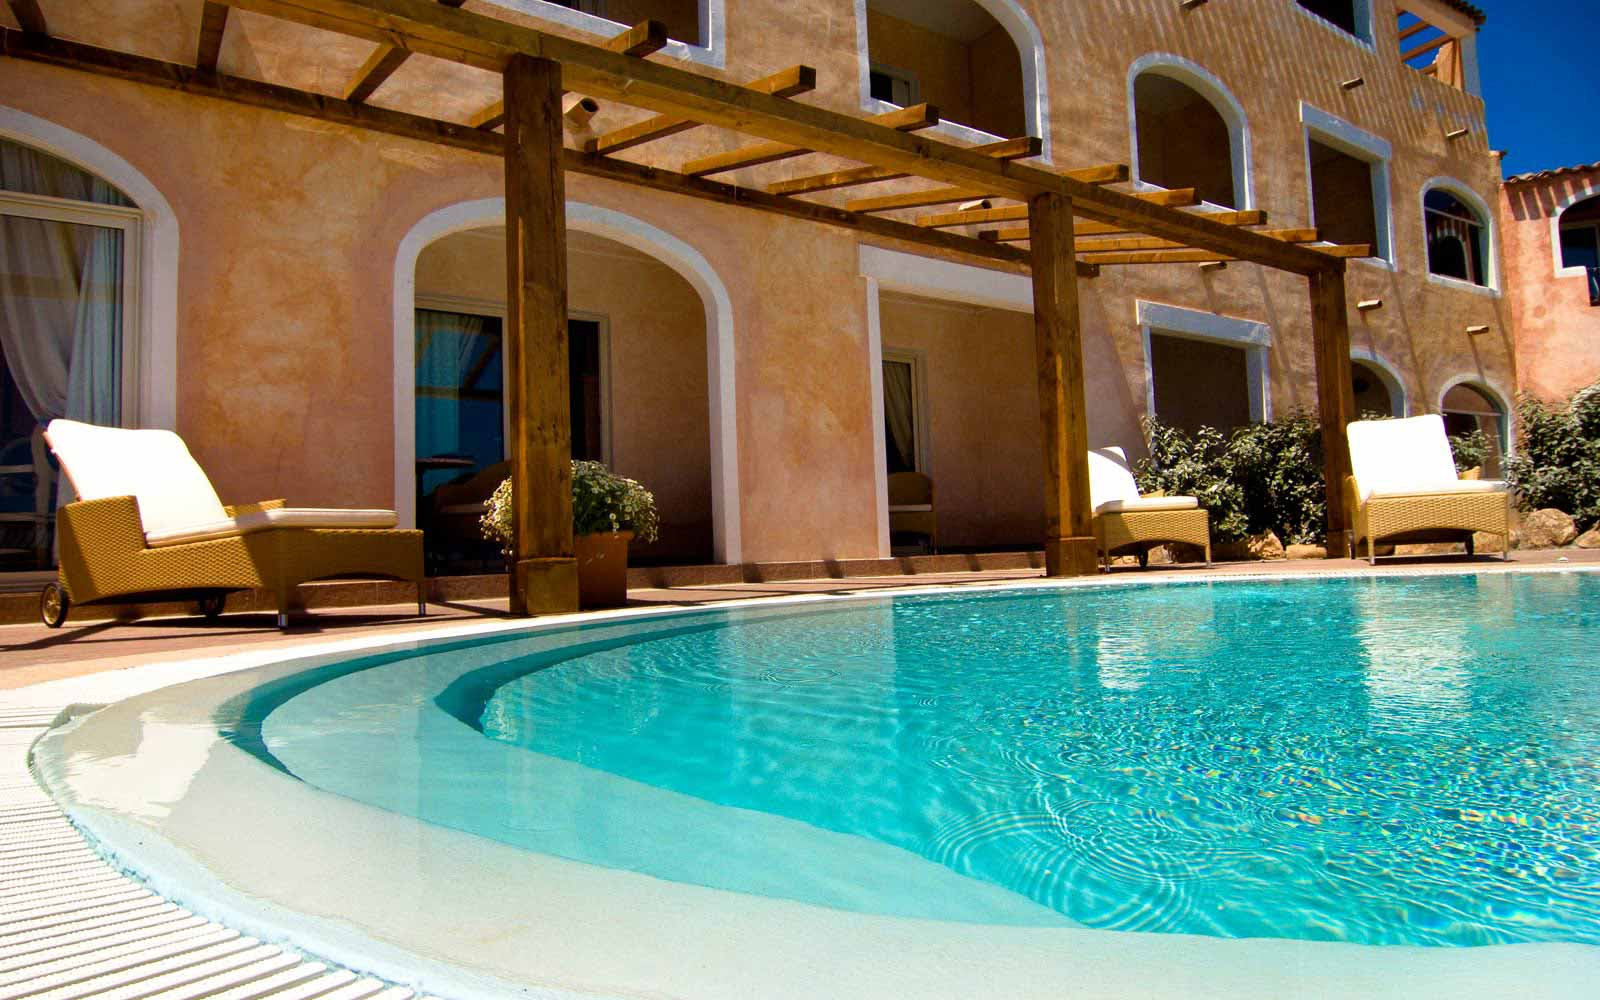 Presidential suite's pool at Colonna Resort